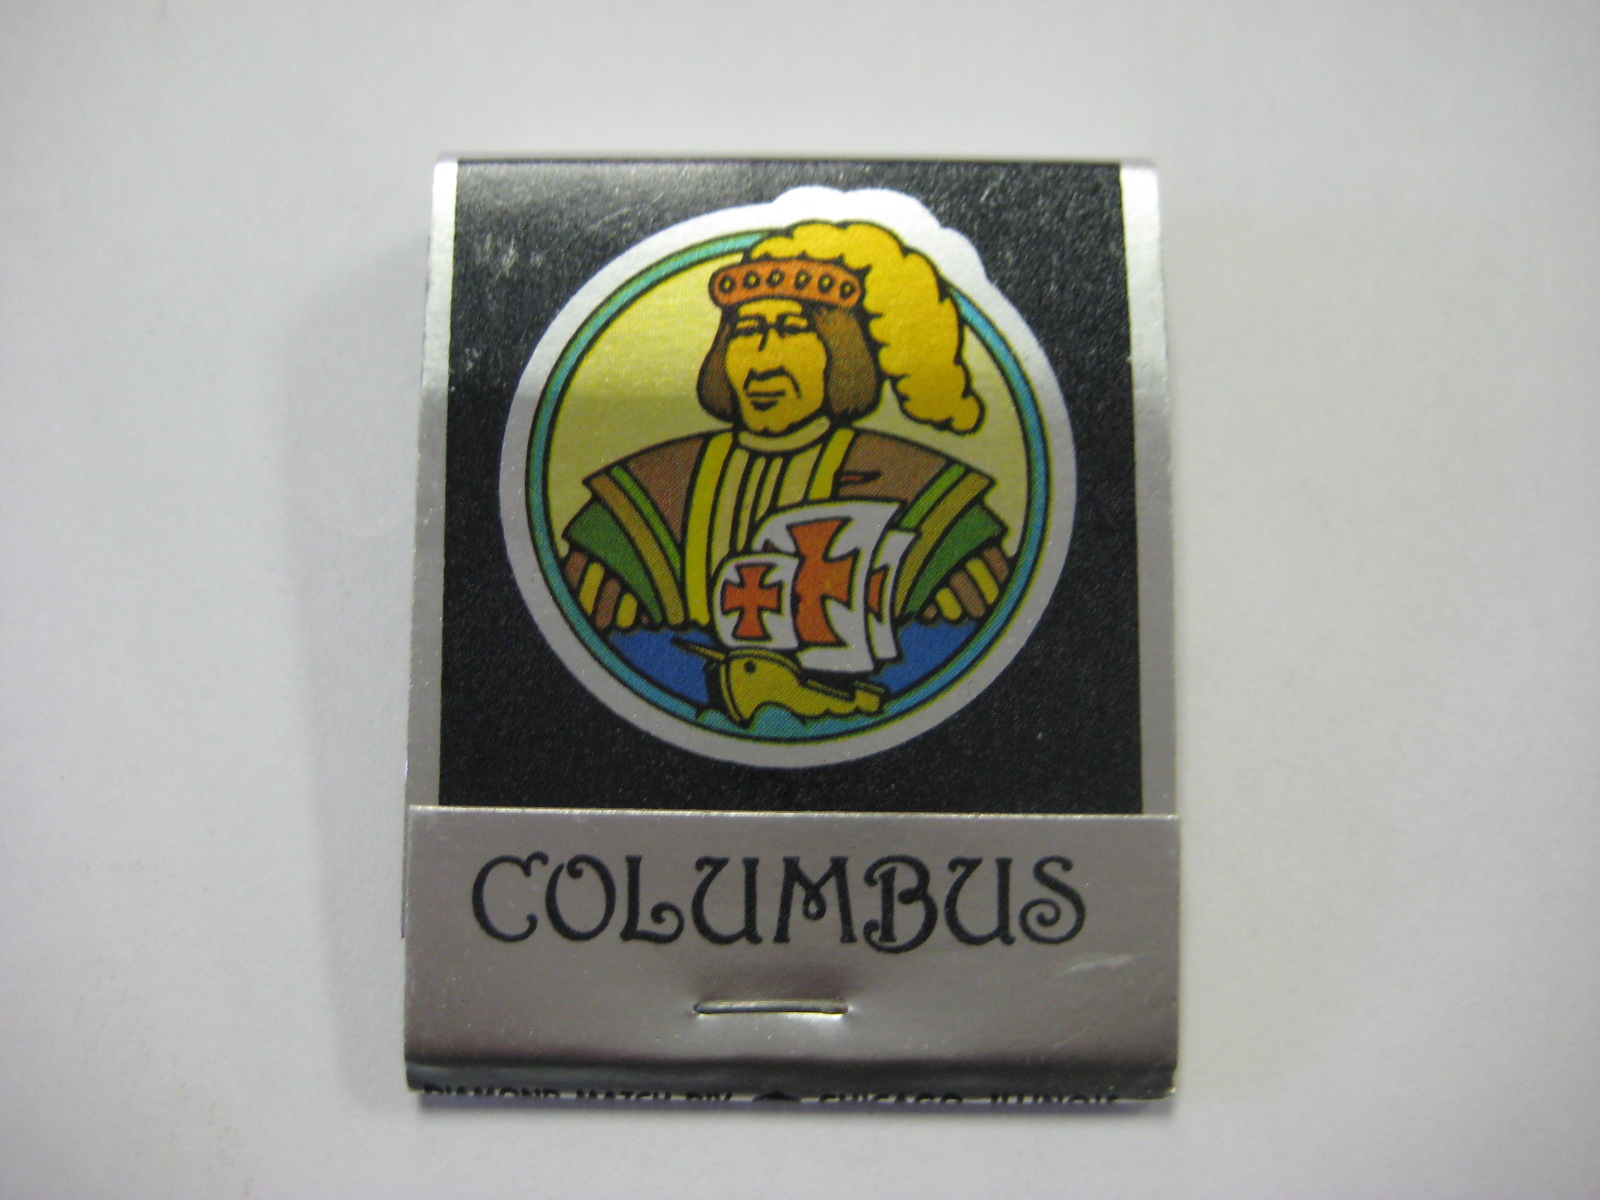 Playboy Club 1980 Columbus Matches